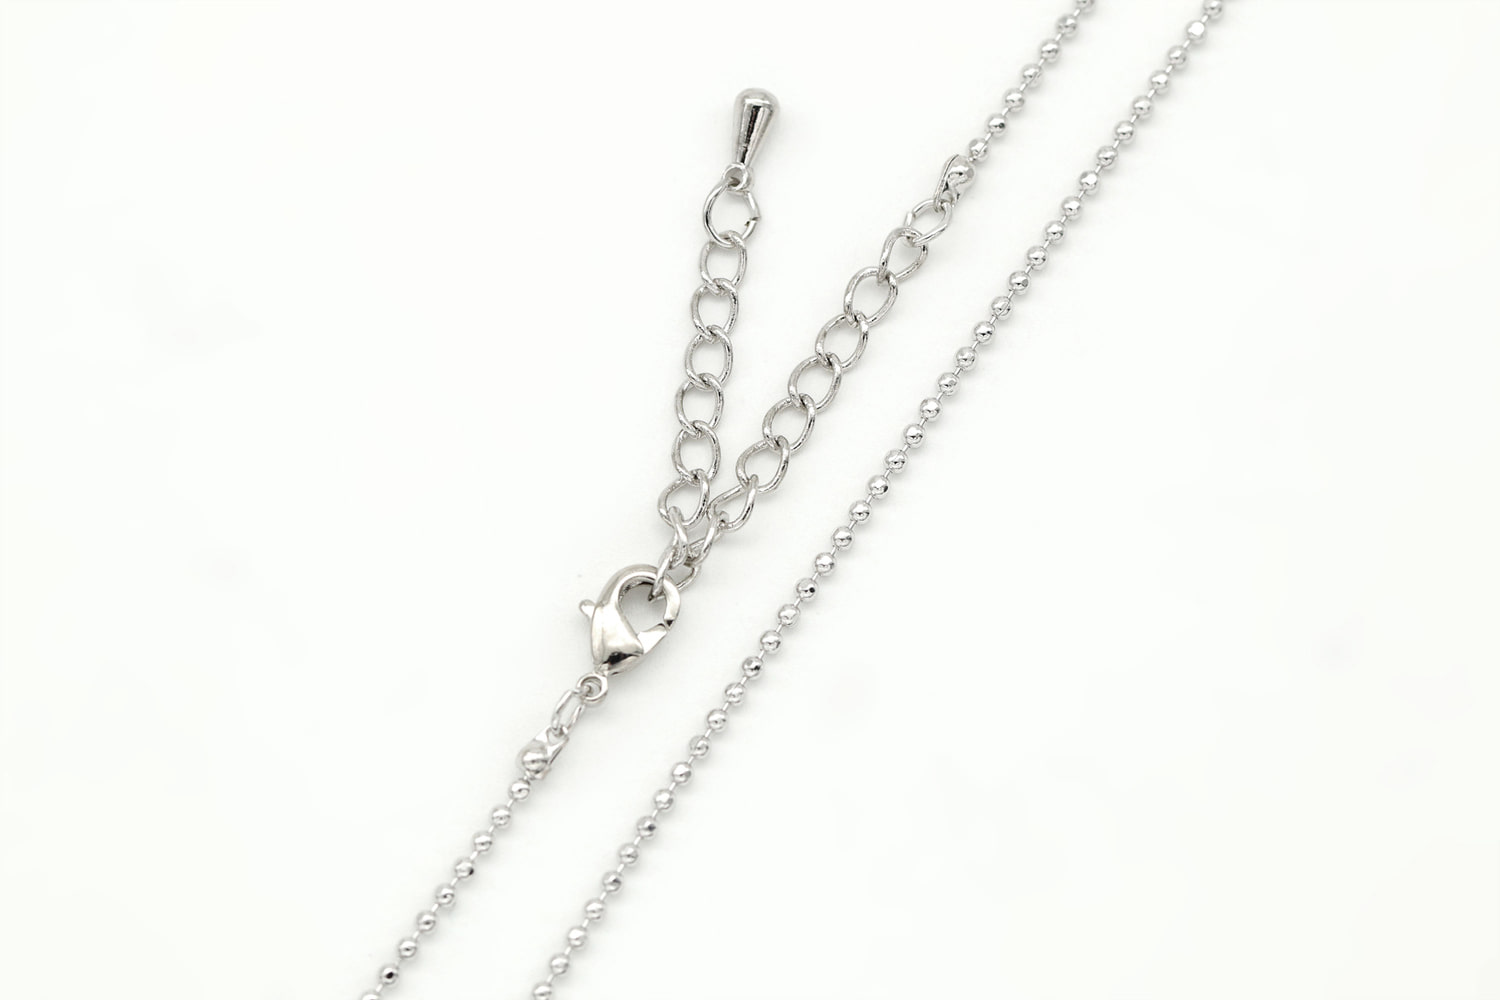 1.5 ball DC chain necklace, N0404-R1